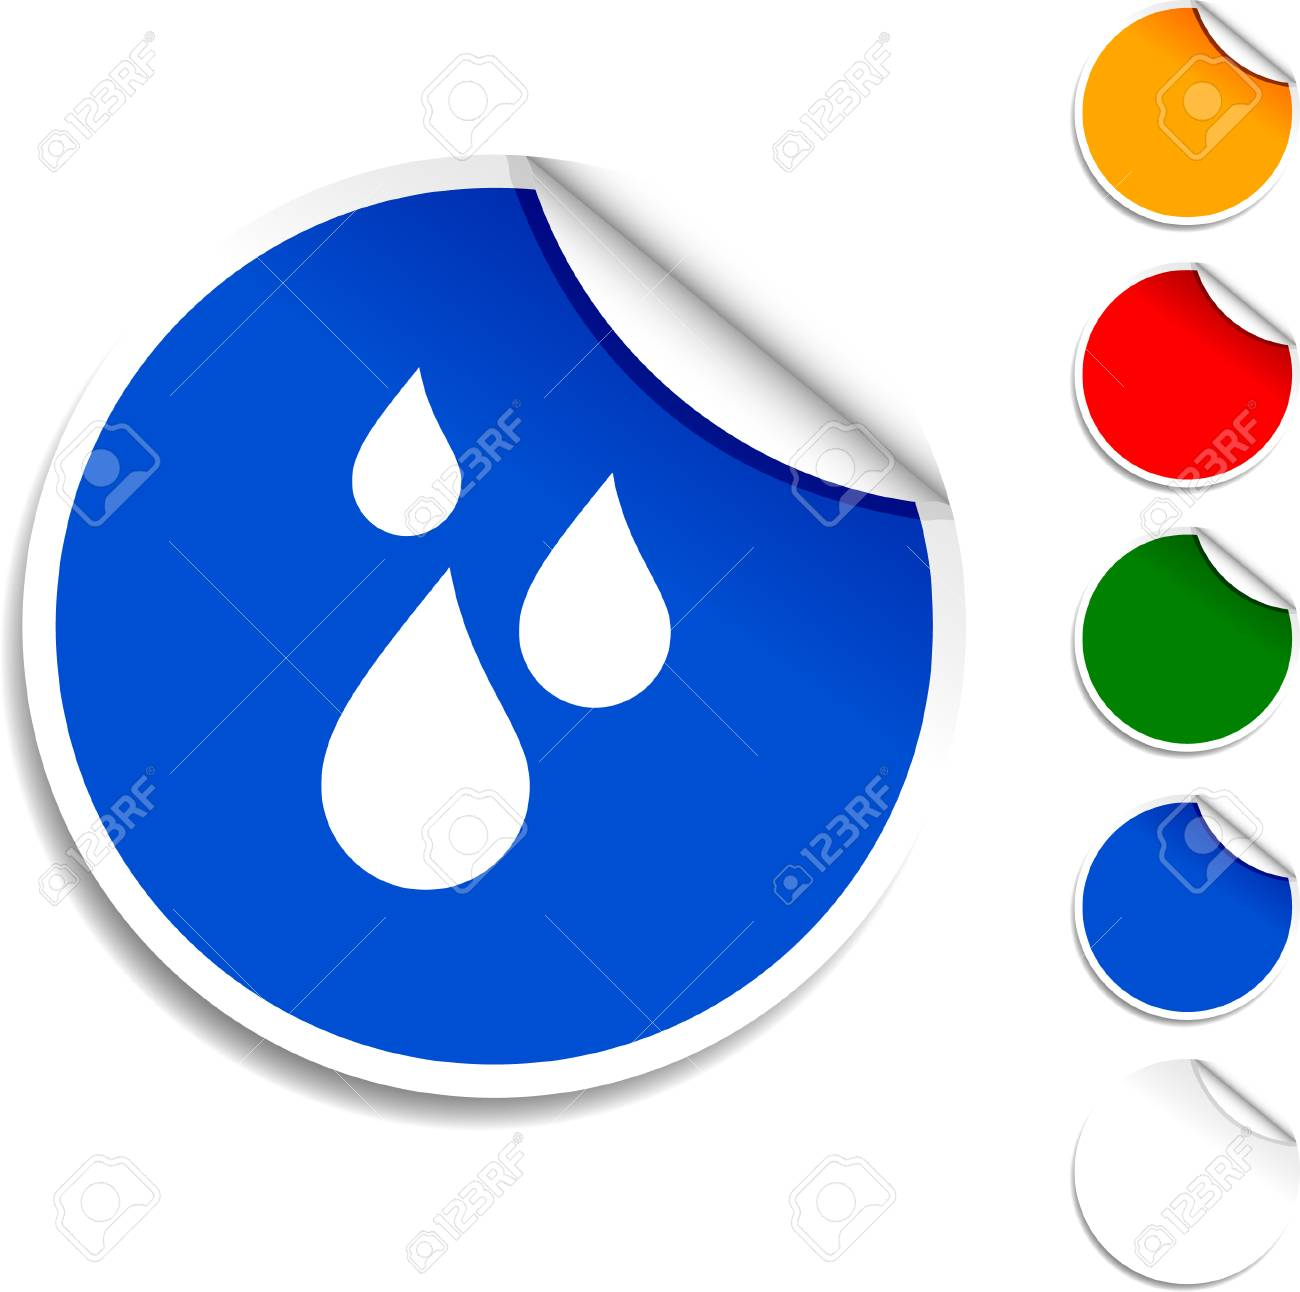 Rain  sheet icon. Vector illustration. Stock Vector - 5594574